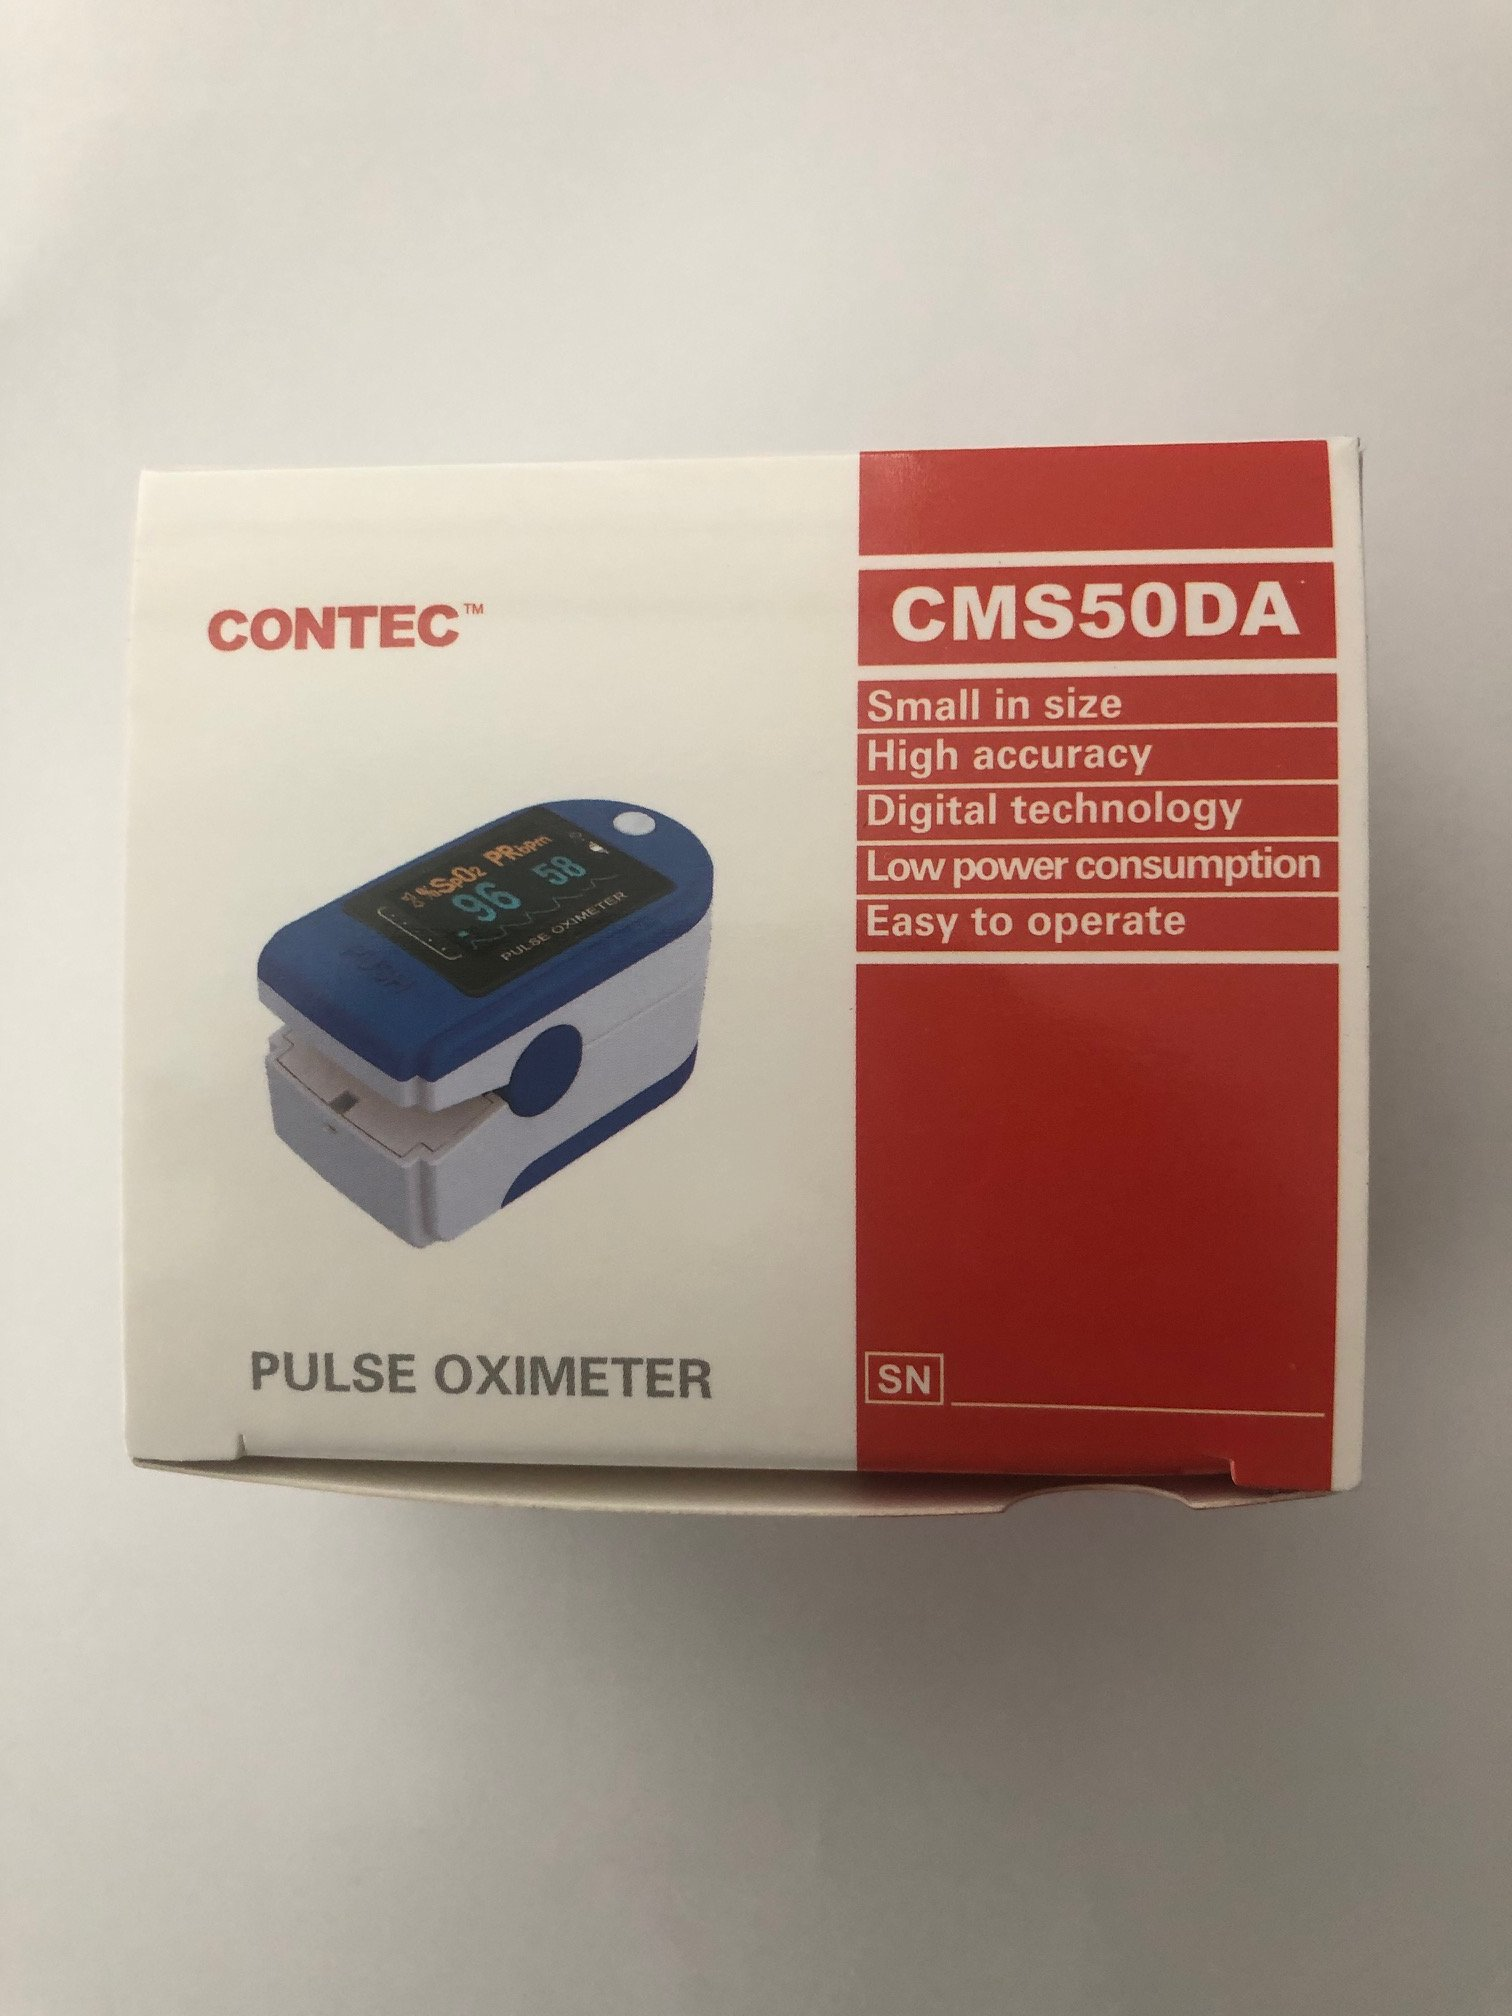 '.Pulse Oximeter by Contec Verid.'